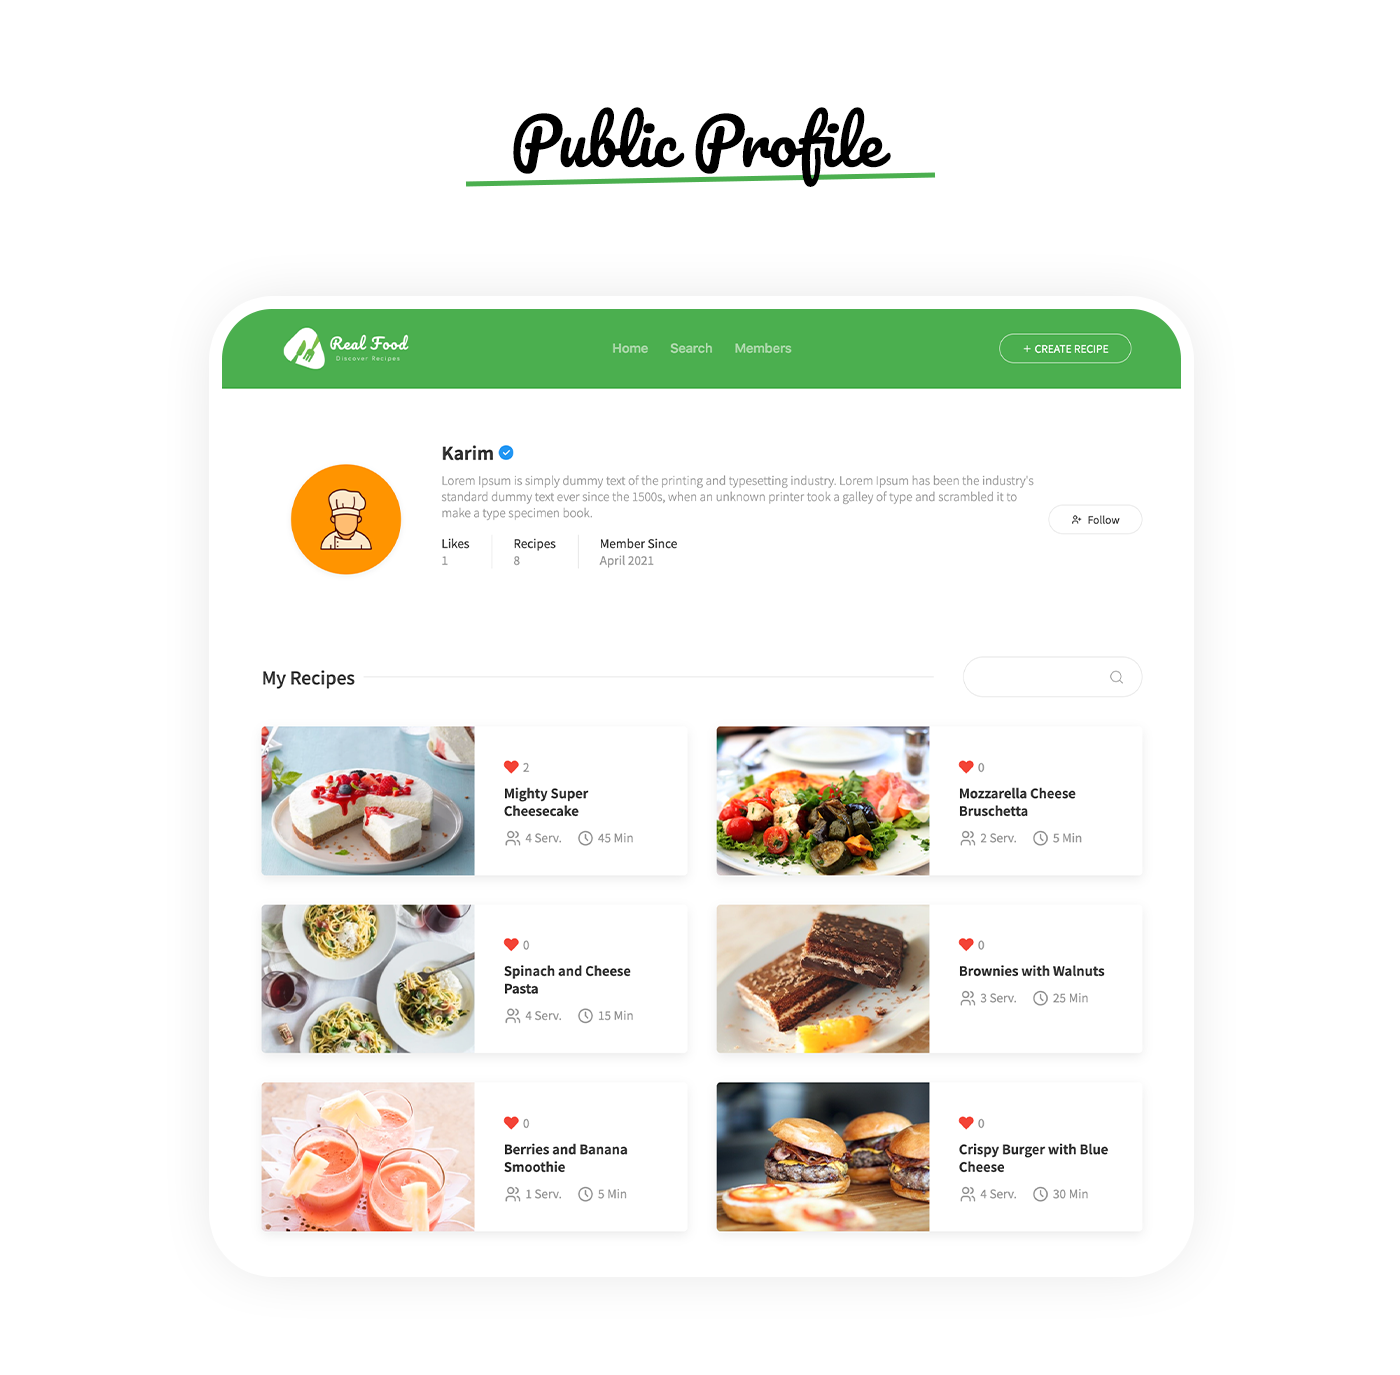 RealFood | The Ultimate PHP Recipes & Community Food - 10